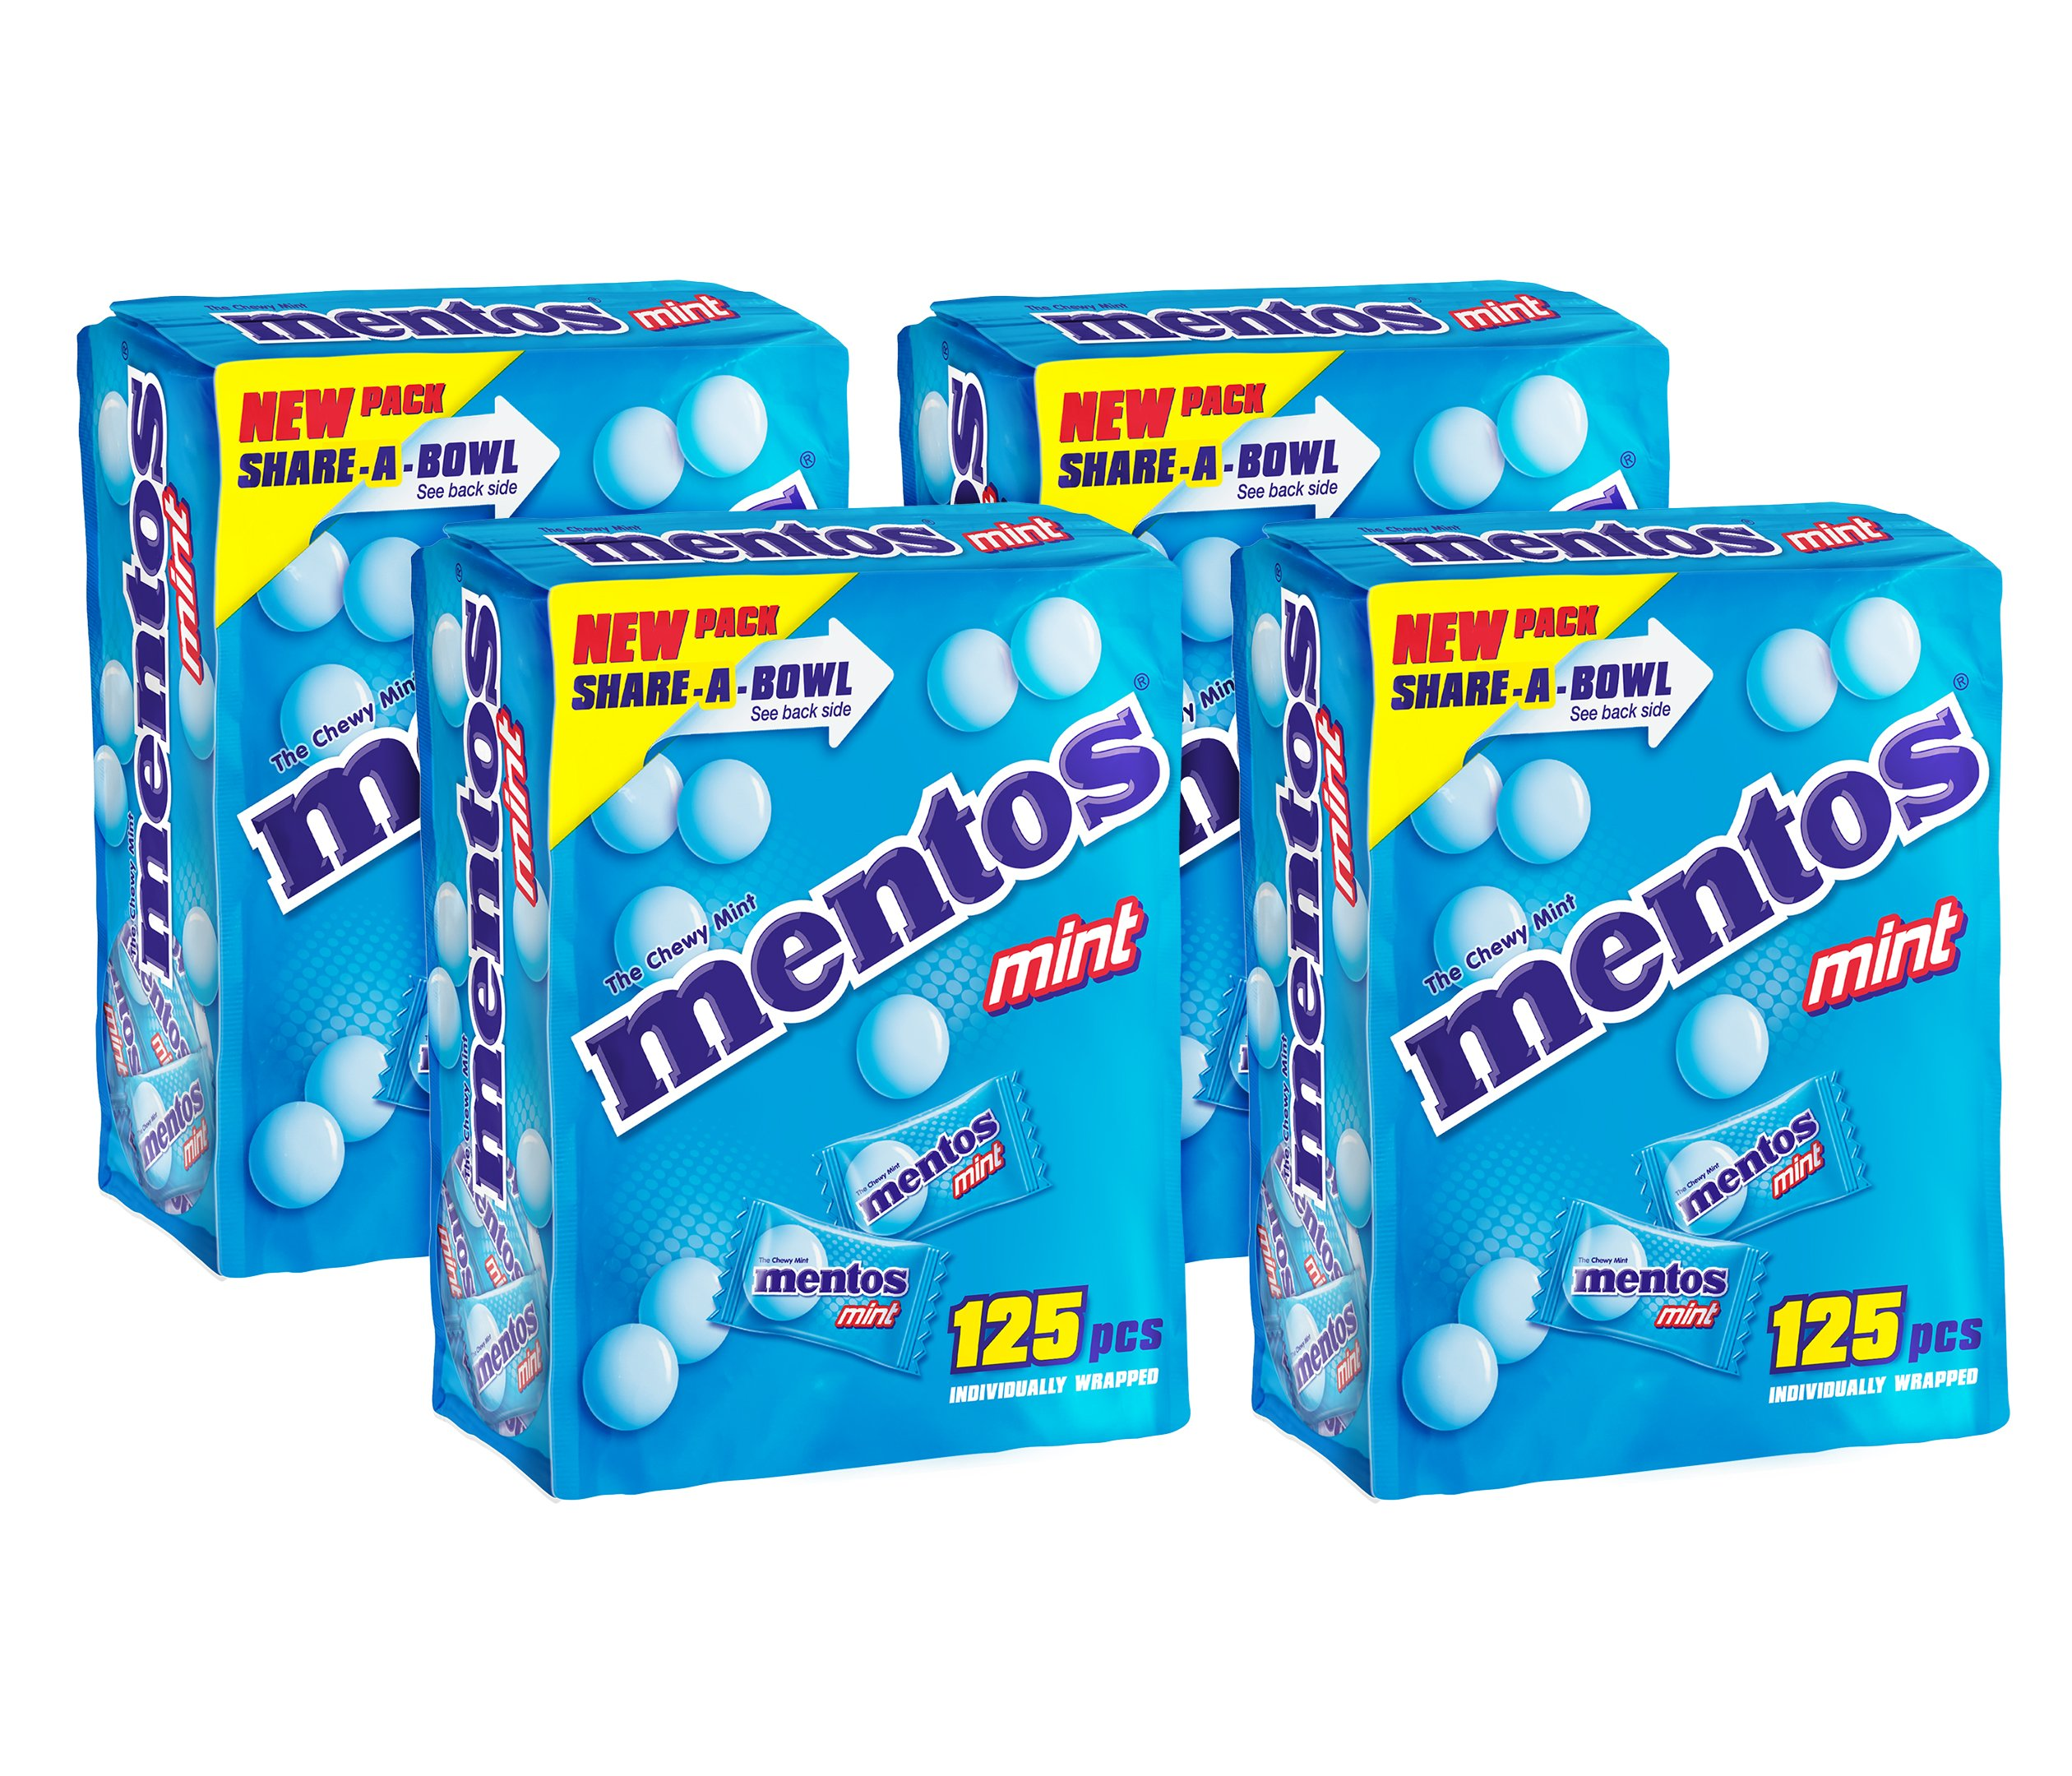 Mentos Chewy Mints in Mint Flavor, Non Melting, 125 Individually Wrapped Pieces in a Reclosable Bag (Pack of 4)